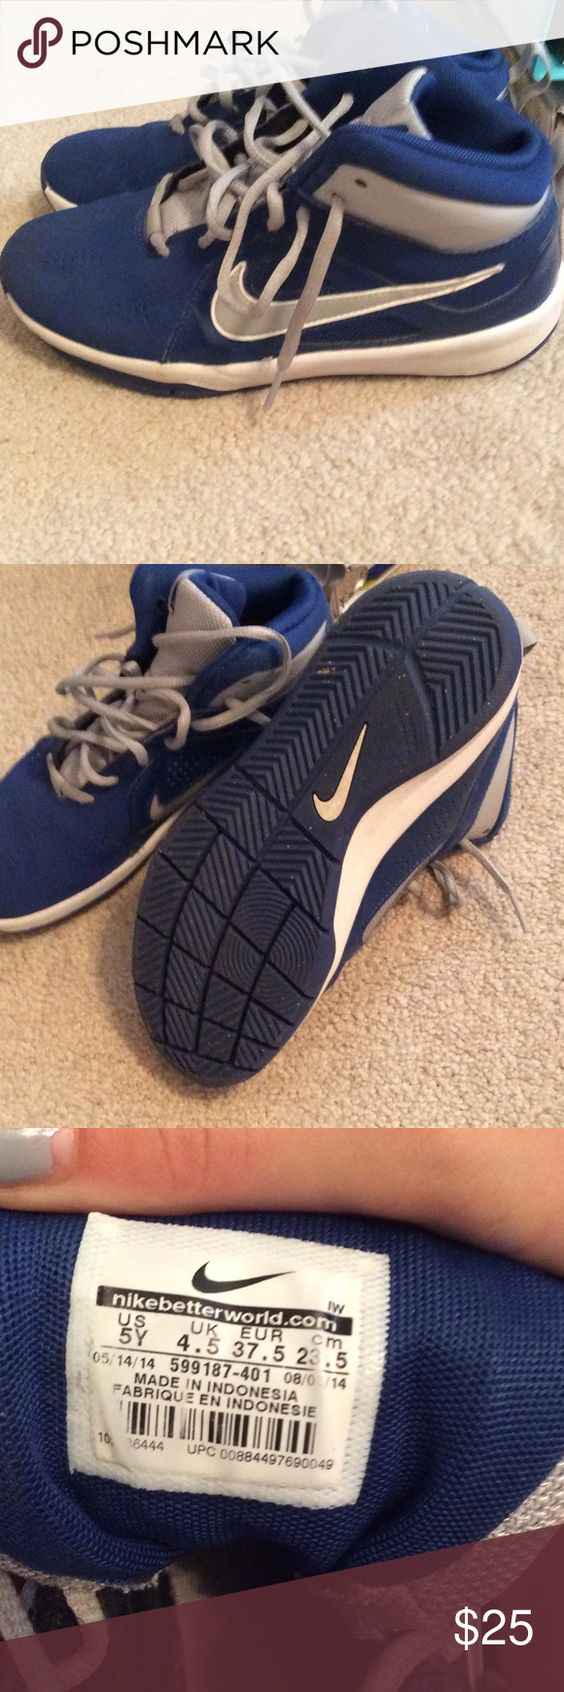 Youth Nike basketball shoes Only worn inside gym. Nike youth size 5 basketball shoes Nike Shoes Sneakers